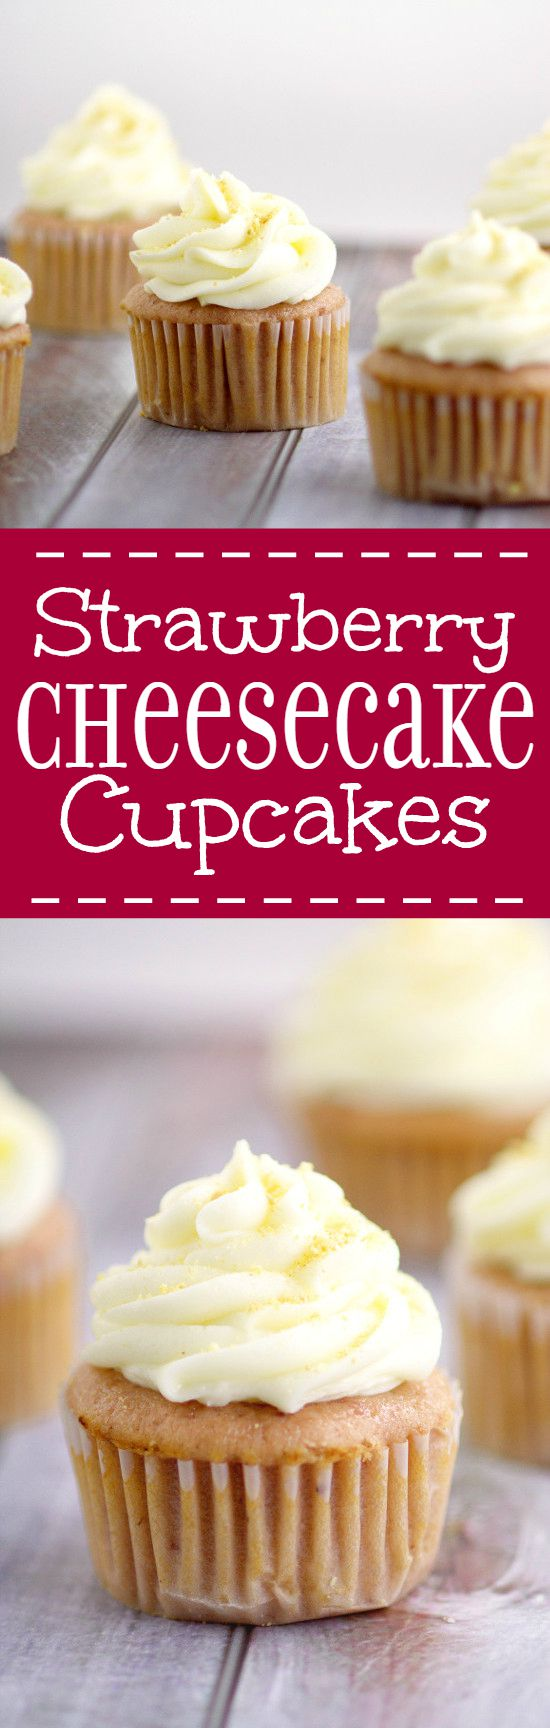 Strawberry Cheesecake Cupcakes have a moist Strawberry cupcakes recipe with cream cheese frosting and graham cracker crumb sprinkles. Fun idea for a birthday! Love that the cupcakes are made from REAL strawberries!